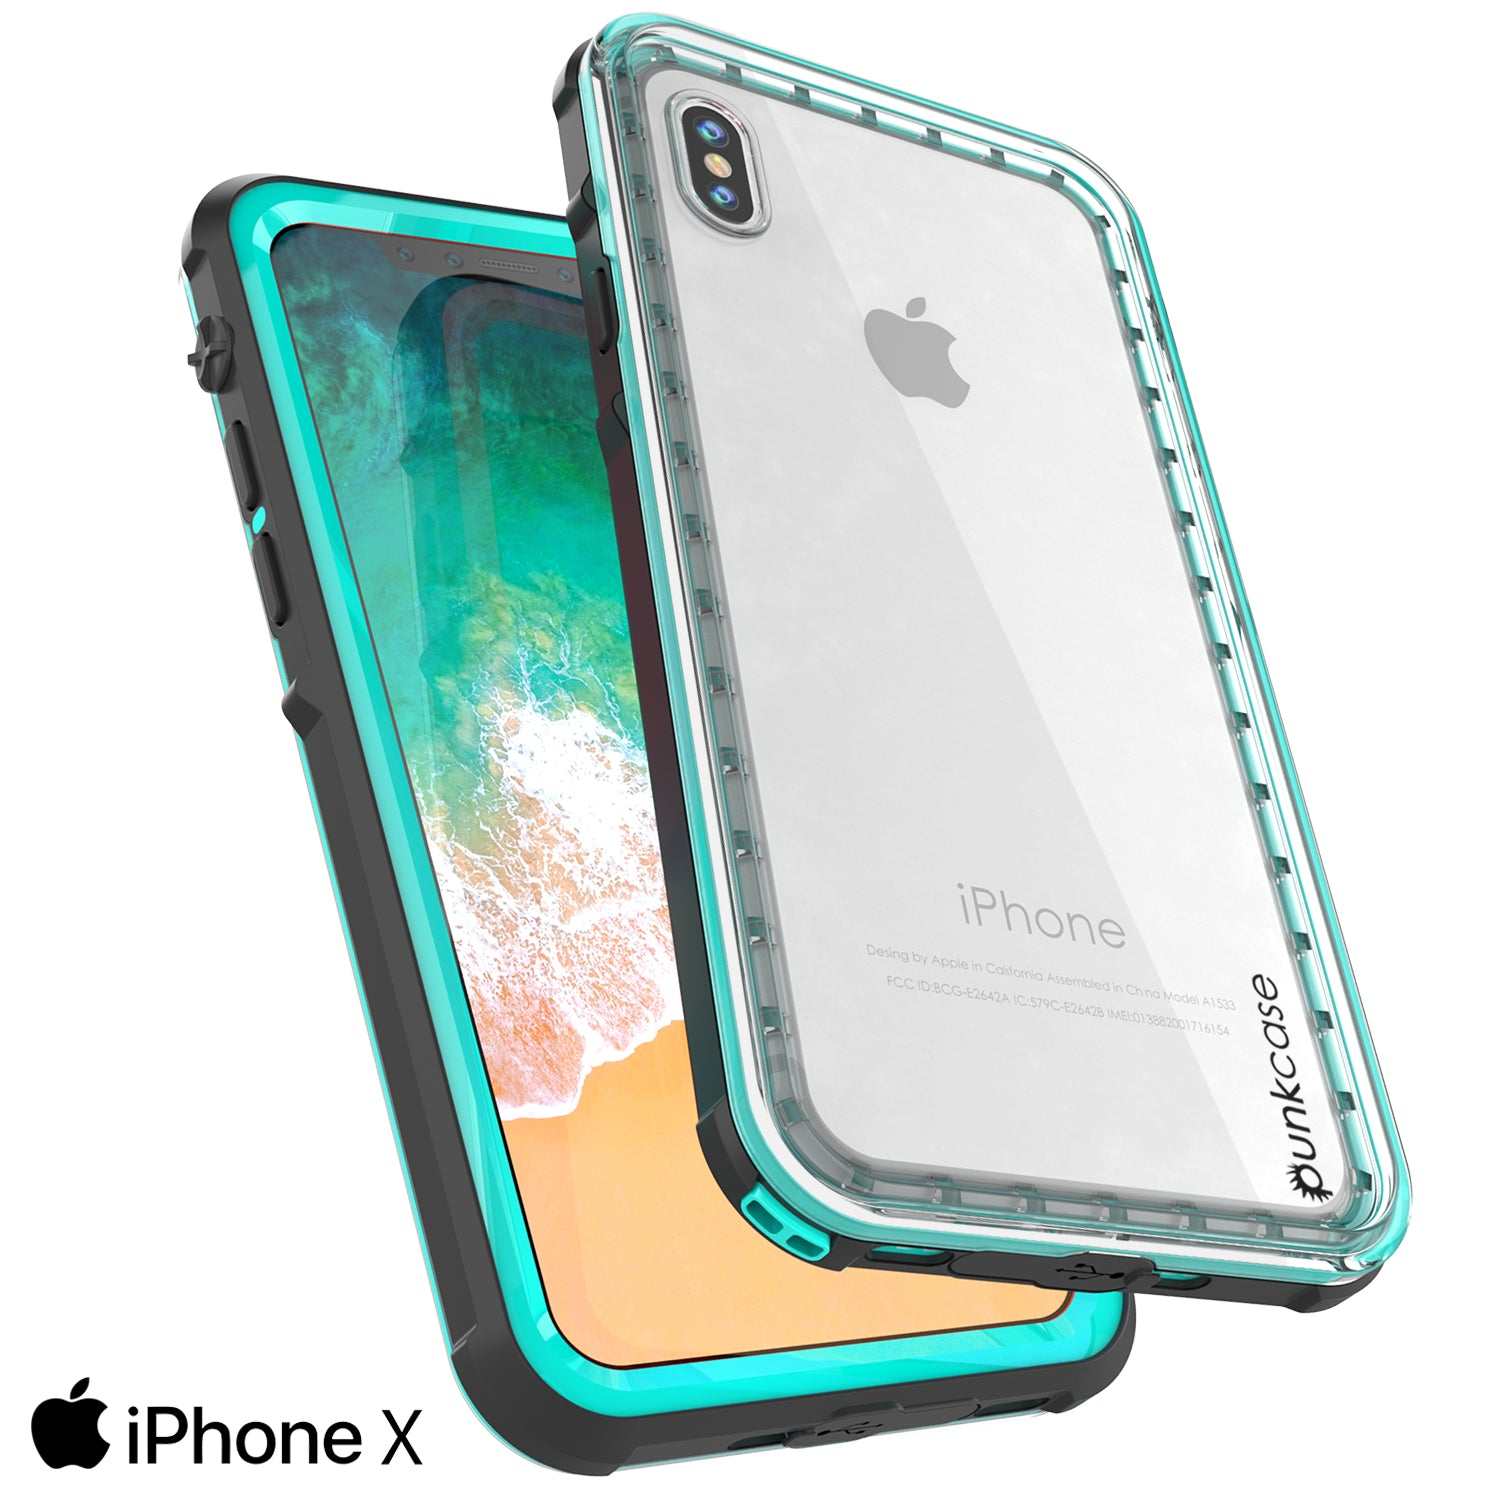 iPhone X Case, PUNKCase [CRYSTAL SERIES] Protective IP68 Certified, Ultra Slim Fit [TEAL]